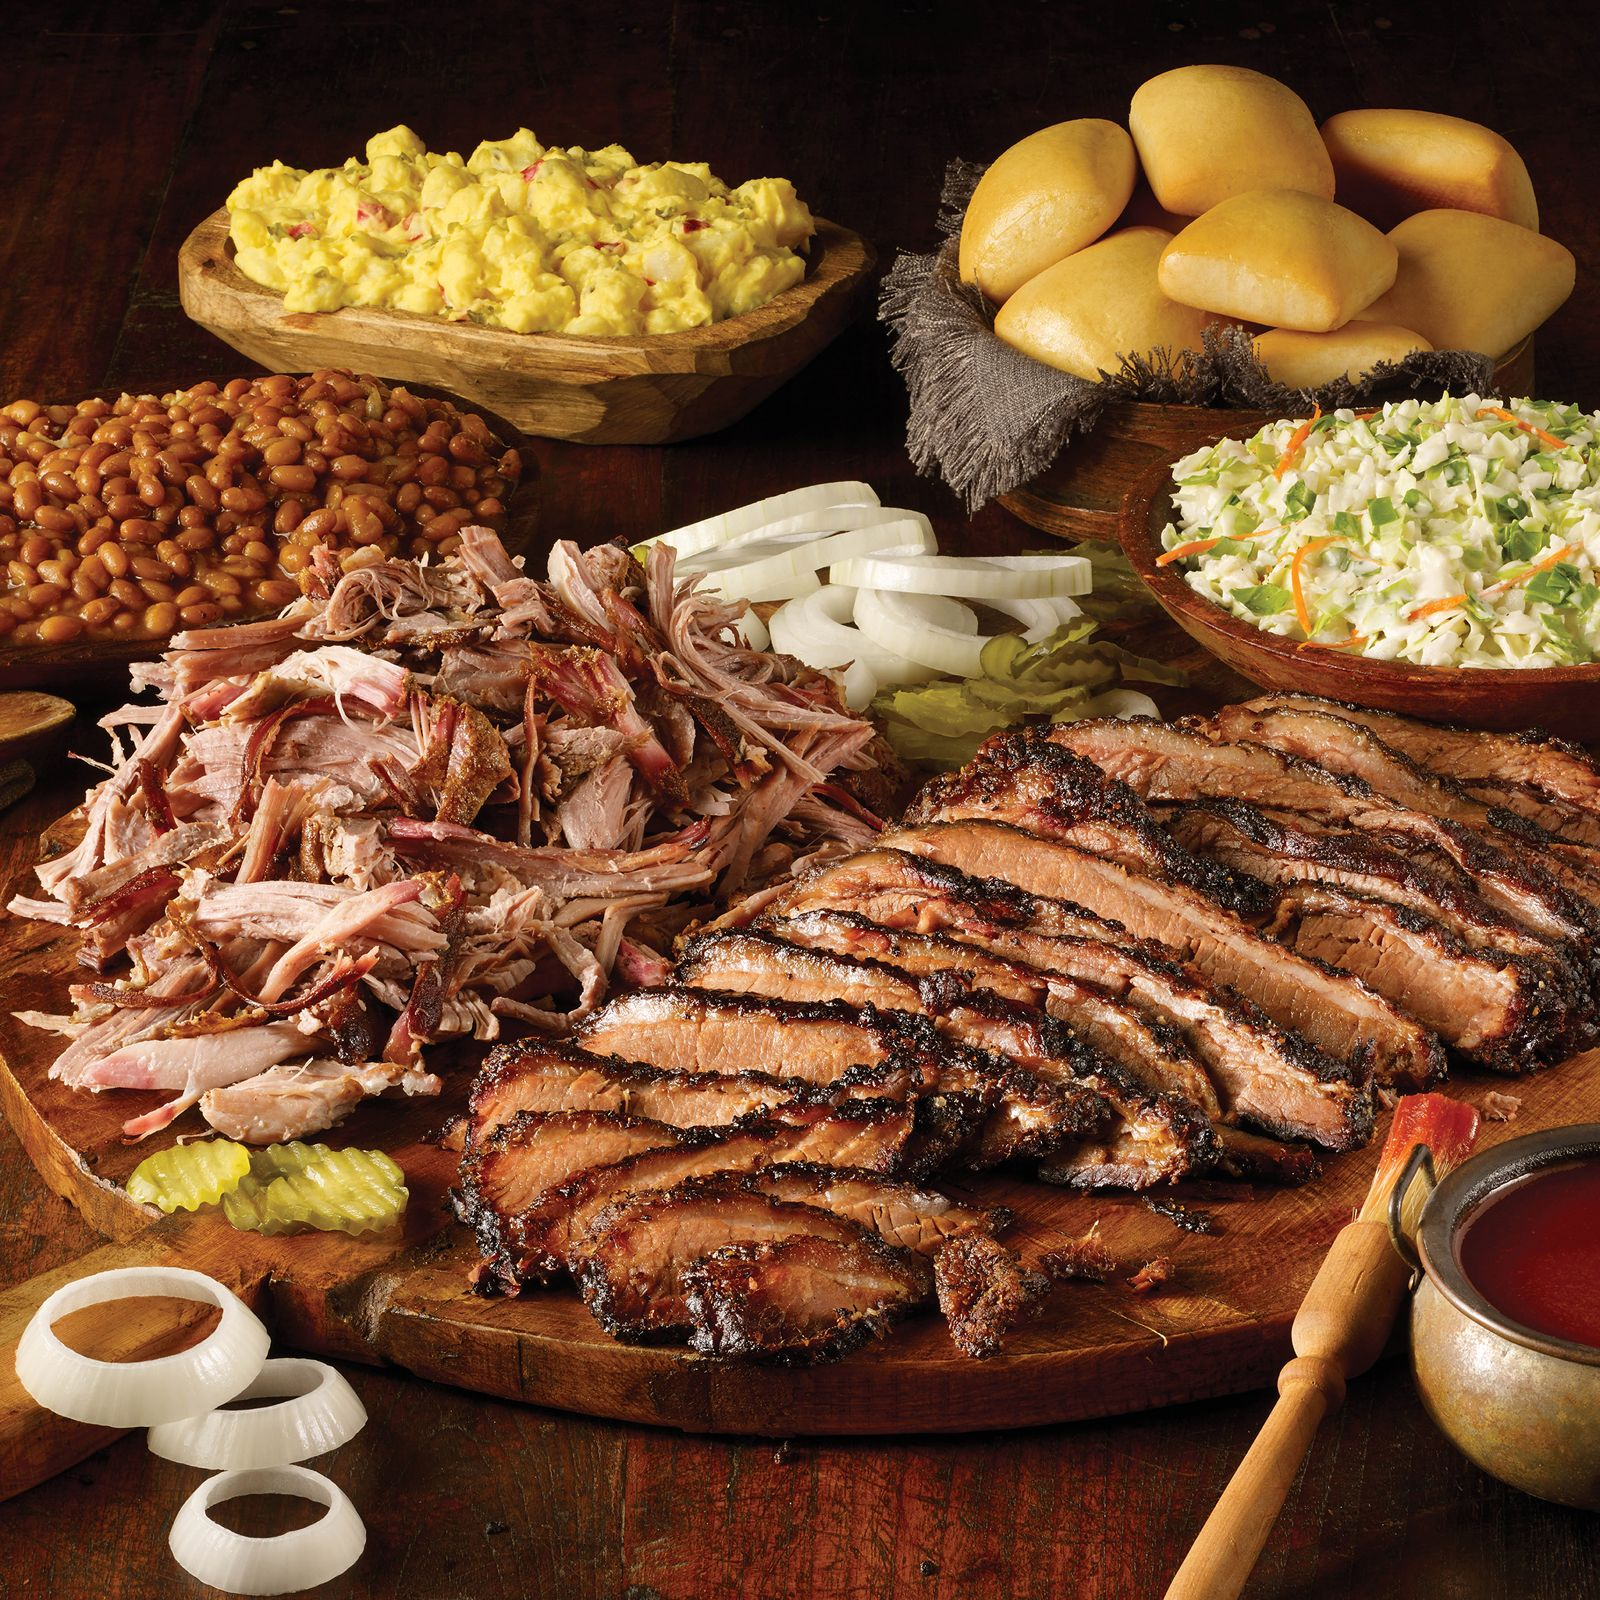 Former Pilot Plans to Bring Dickey's Barbecue Pit to Snohomish, WA